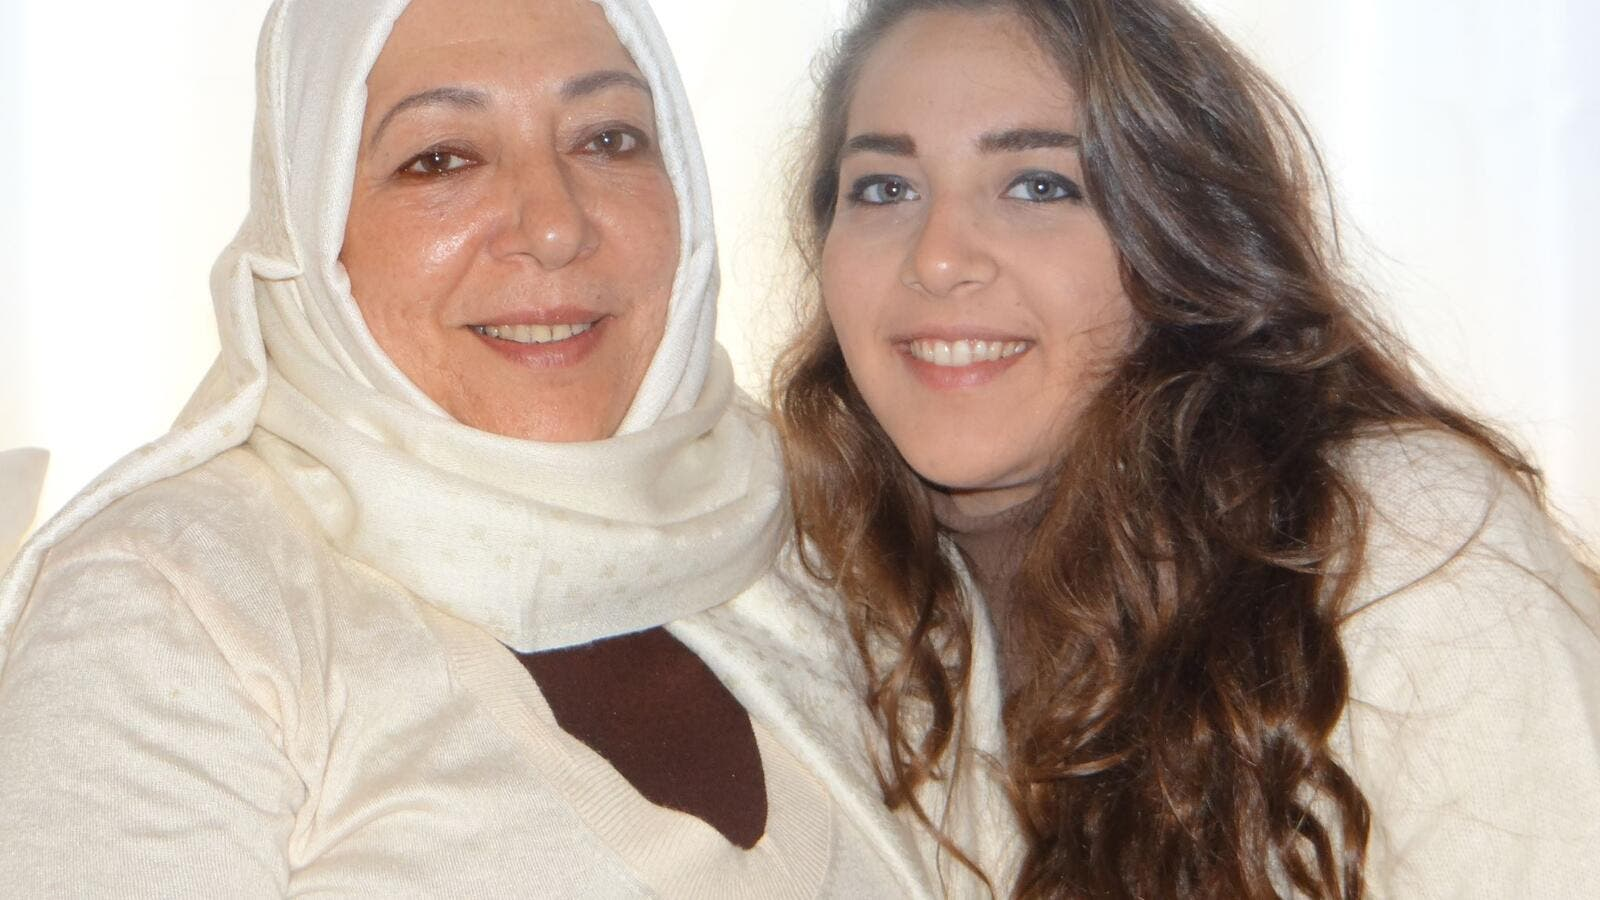 The man is believed to be a family member of Orouba and her daughter Halla Barakat, who were stabbed to death in their apartment on 22 September (Facebook)